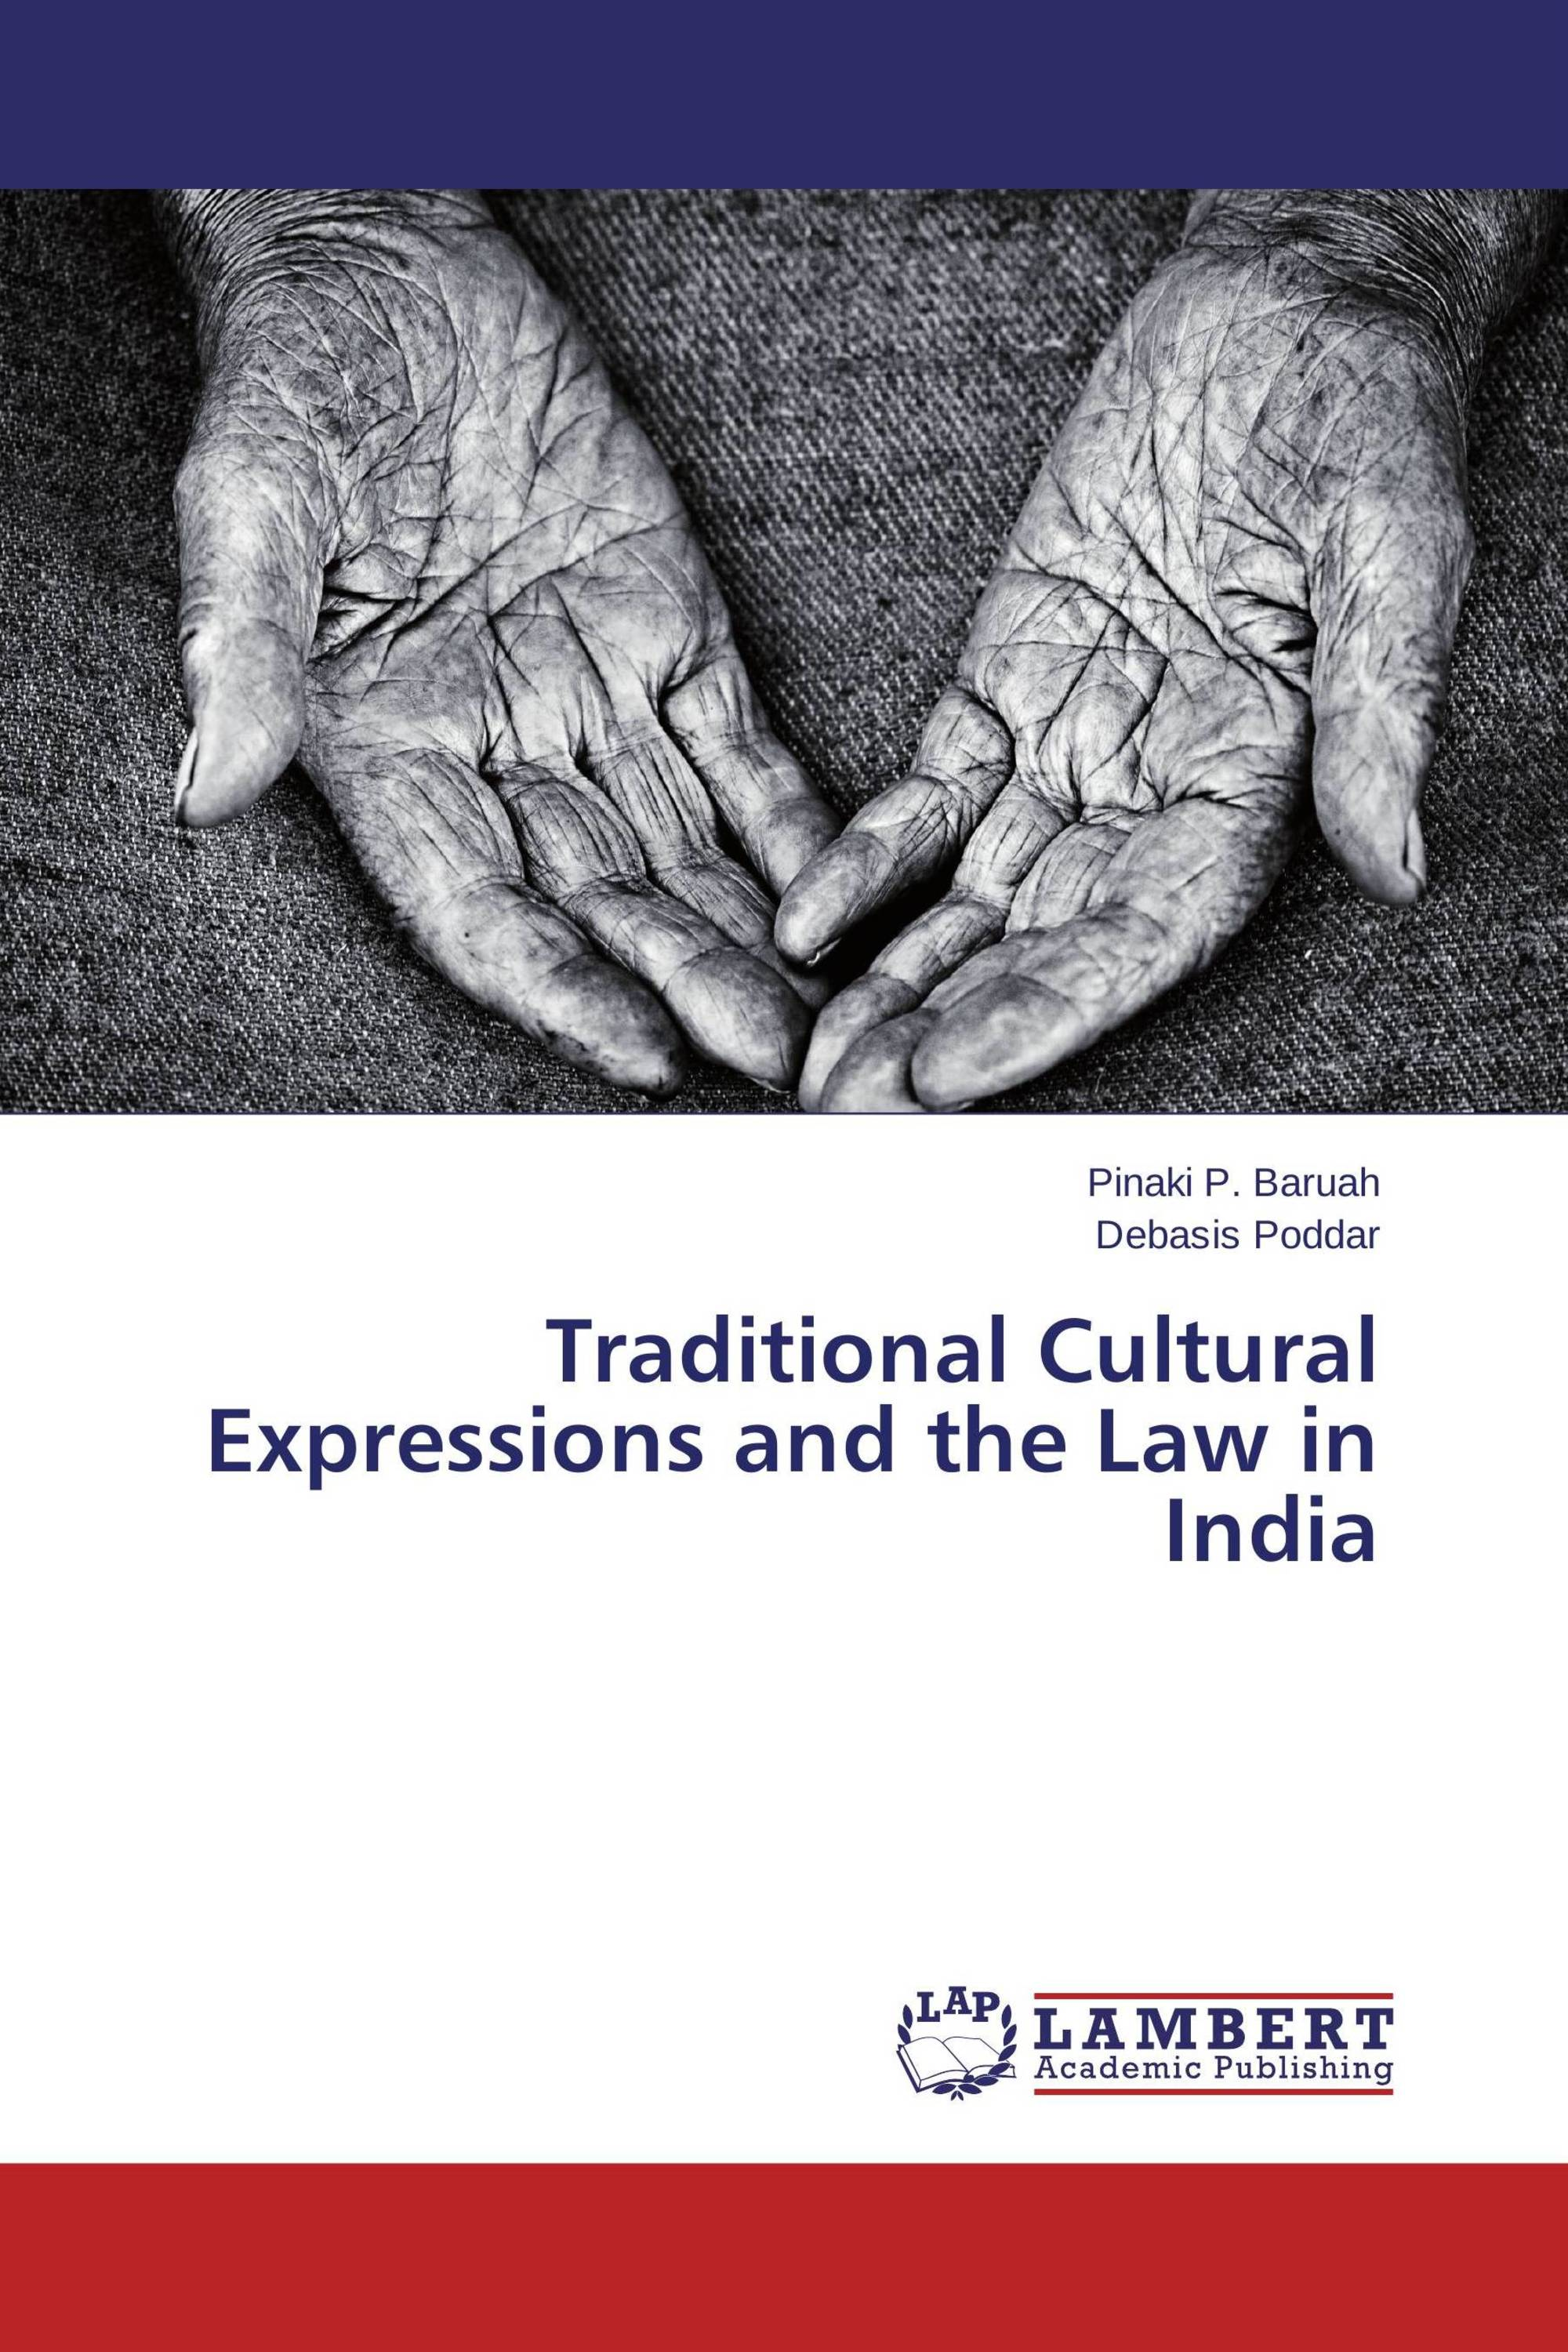 Traditional Cultural Expressions and the Law in India